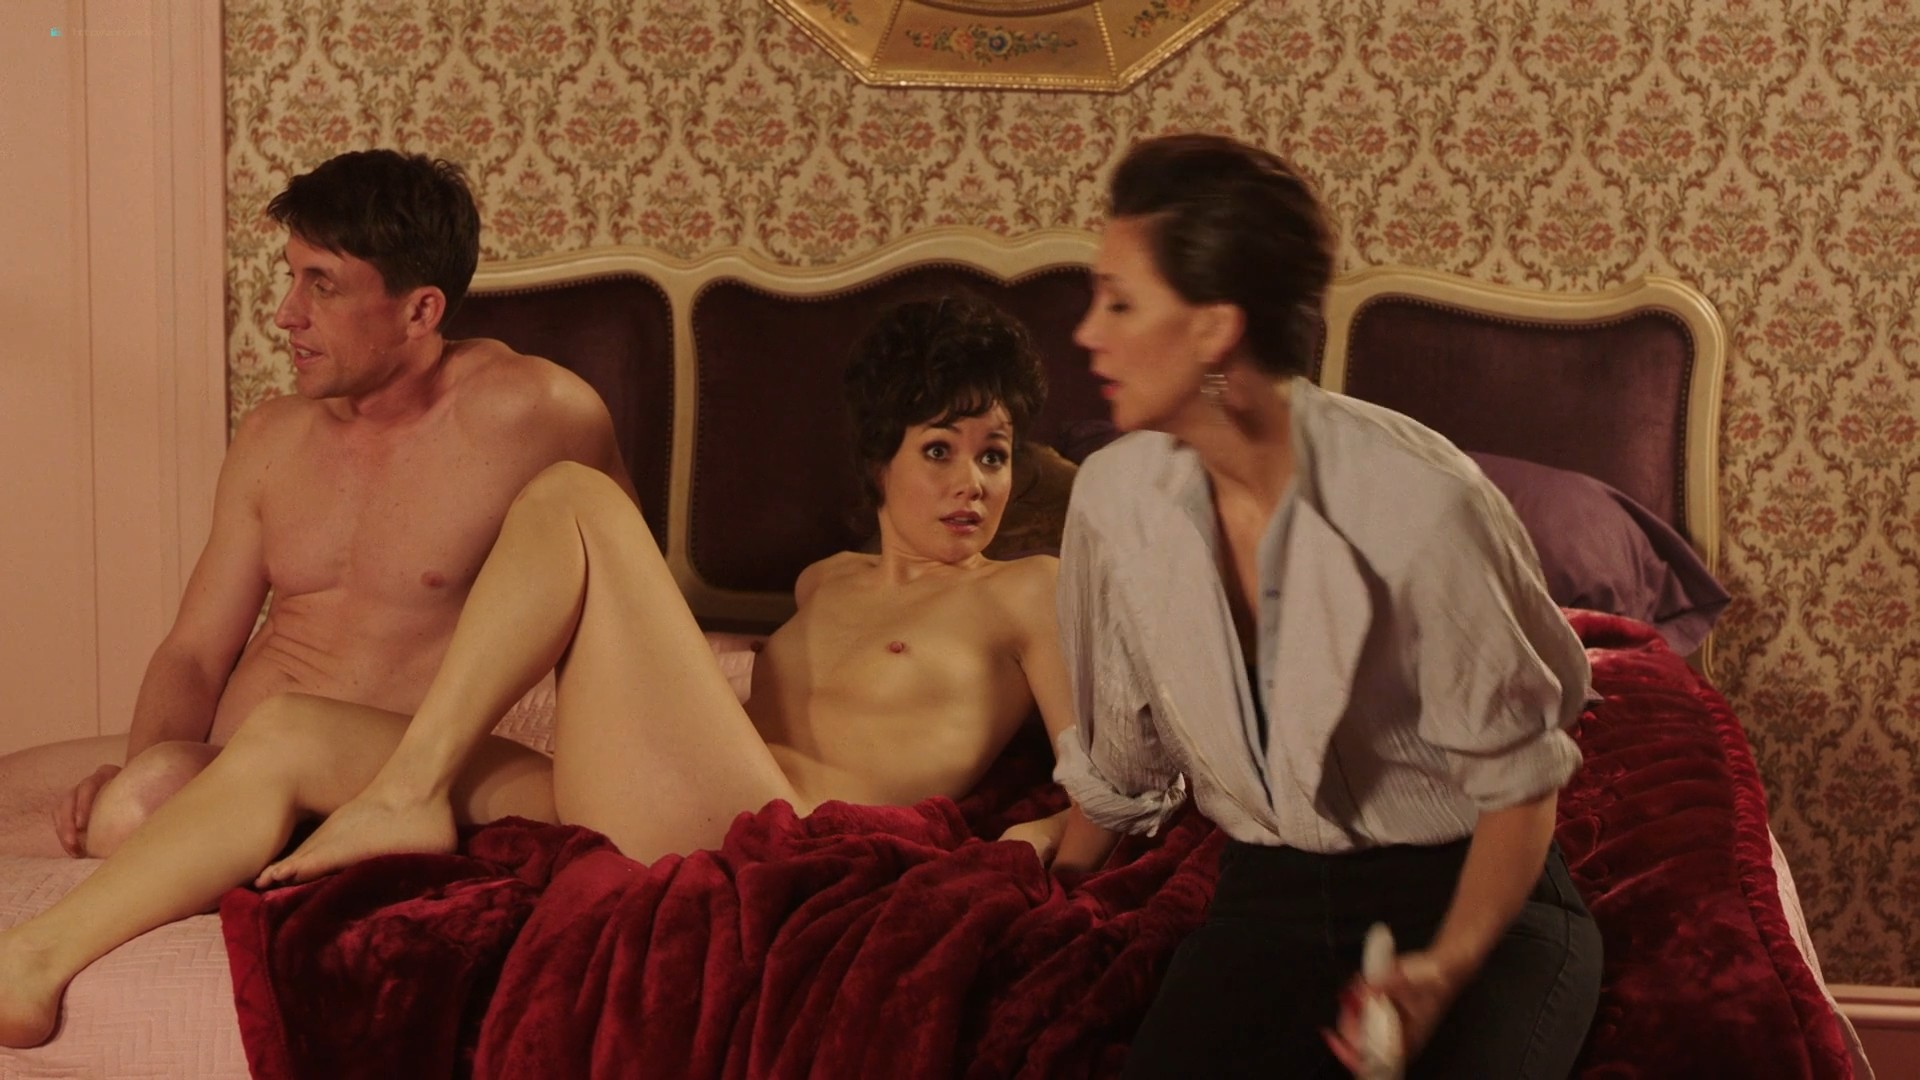 Emily Meade nude sex Krissy Lynn and others nude sex too - The Deuce (2019) s3e2 1080p Web (8)